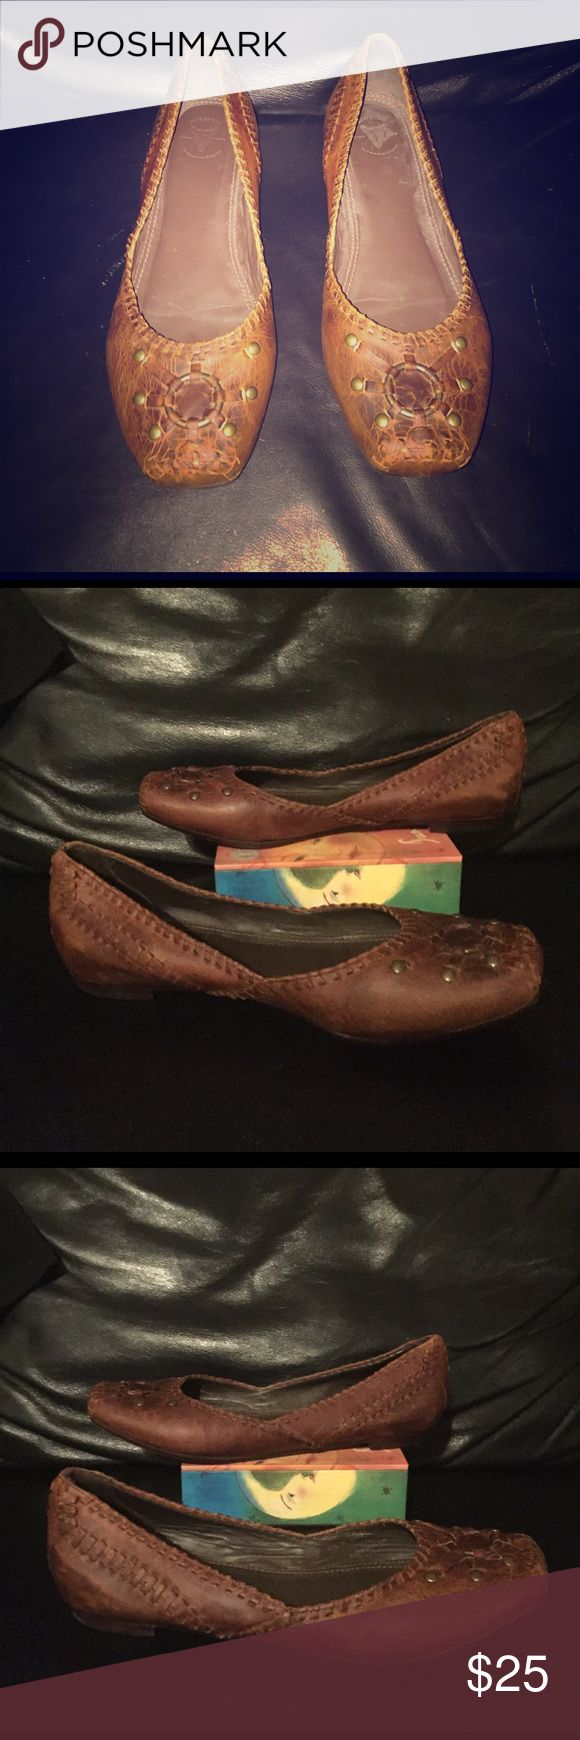 Vintage FRYE Brown Leather Marry Janes Sz 6.5B For your consideration is a vintage FRYE brown leather Marry Jane shoe Sz 6.5B. Shoe is hide leather with leather strap accents throughout and metal ring/stud accents at front. Shoe feature leather padded insole, leather lining and leather heel/sole. Shoe leather has has a nice weathered/distressed look. Message with questions and thanks for stopping by. Frye Shoes Flats & Loafers